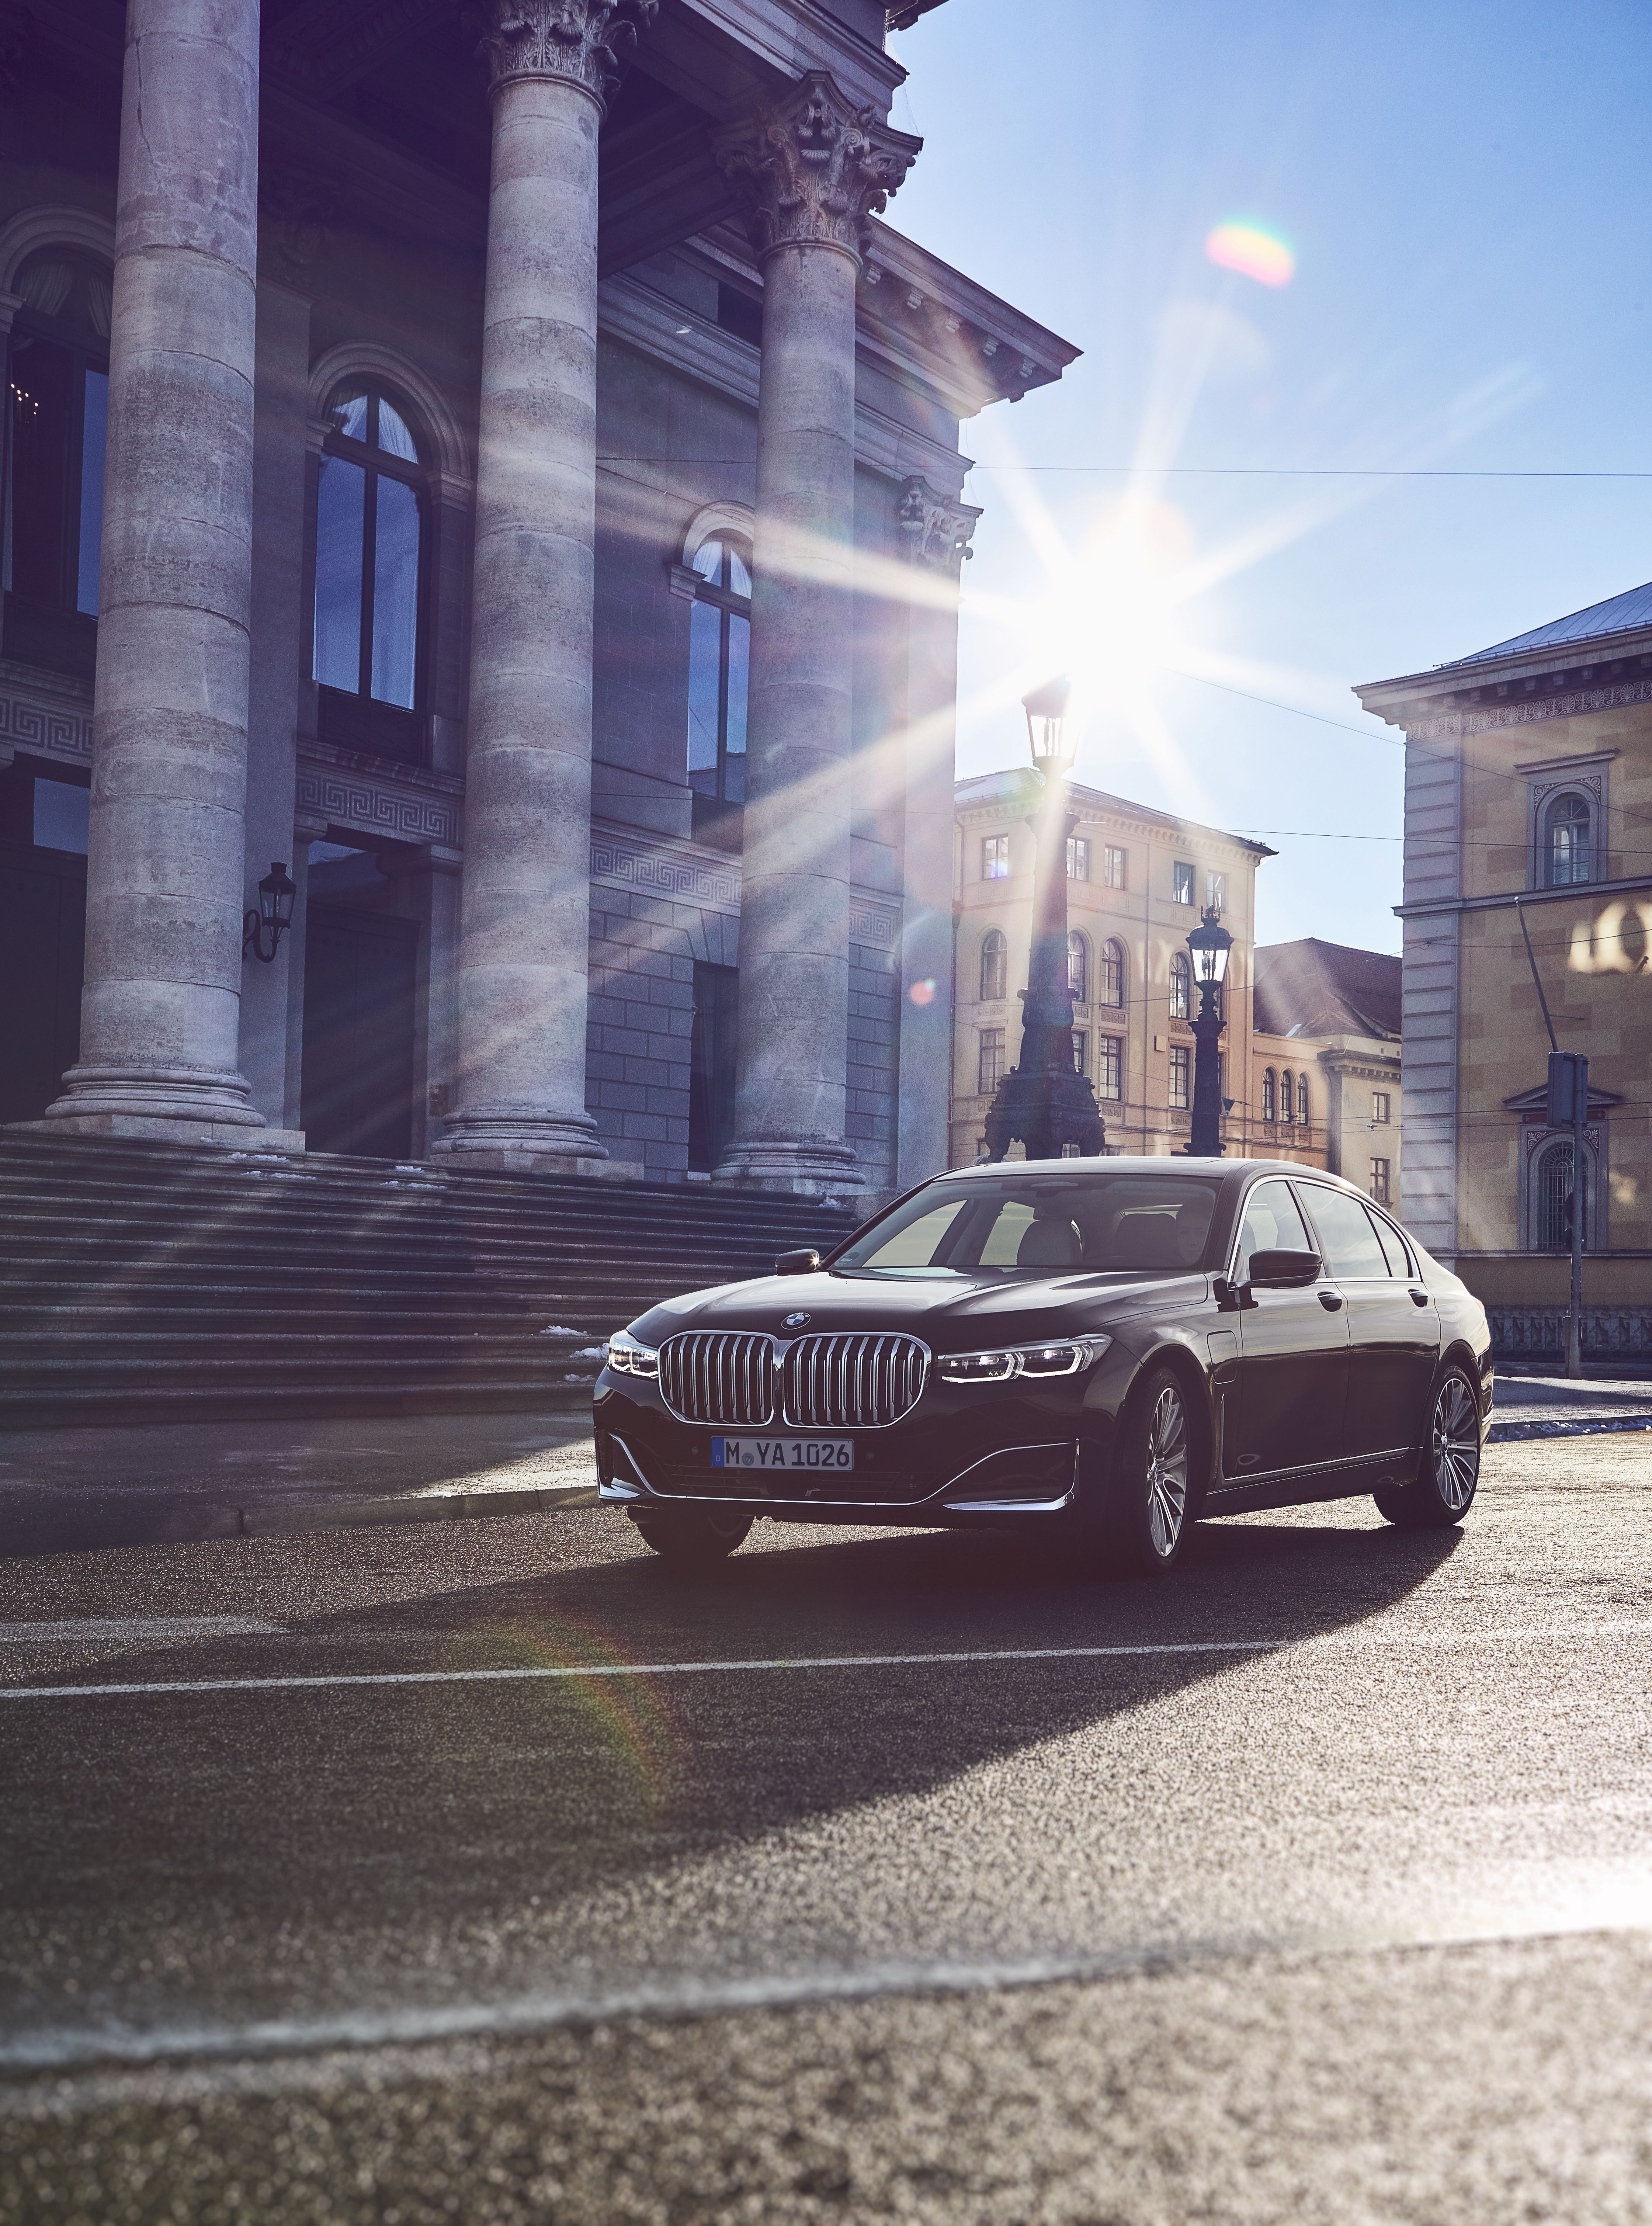 The Plug In Hybrid Models Of The New Bmw 7 Series 745e 745le And 745le Xdrive Market Launch In Spring 2019 Bmw 7 Series New Bmw Bmw